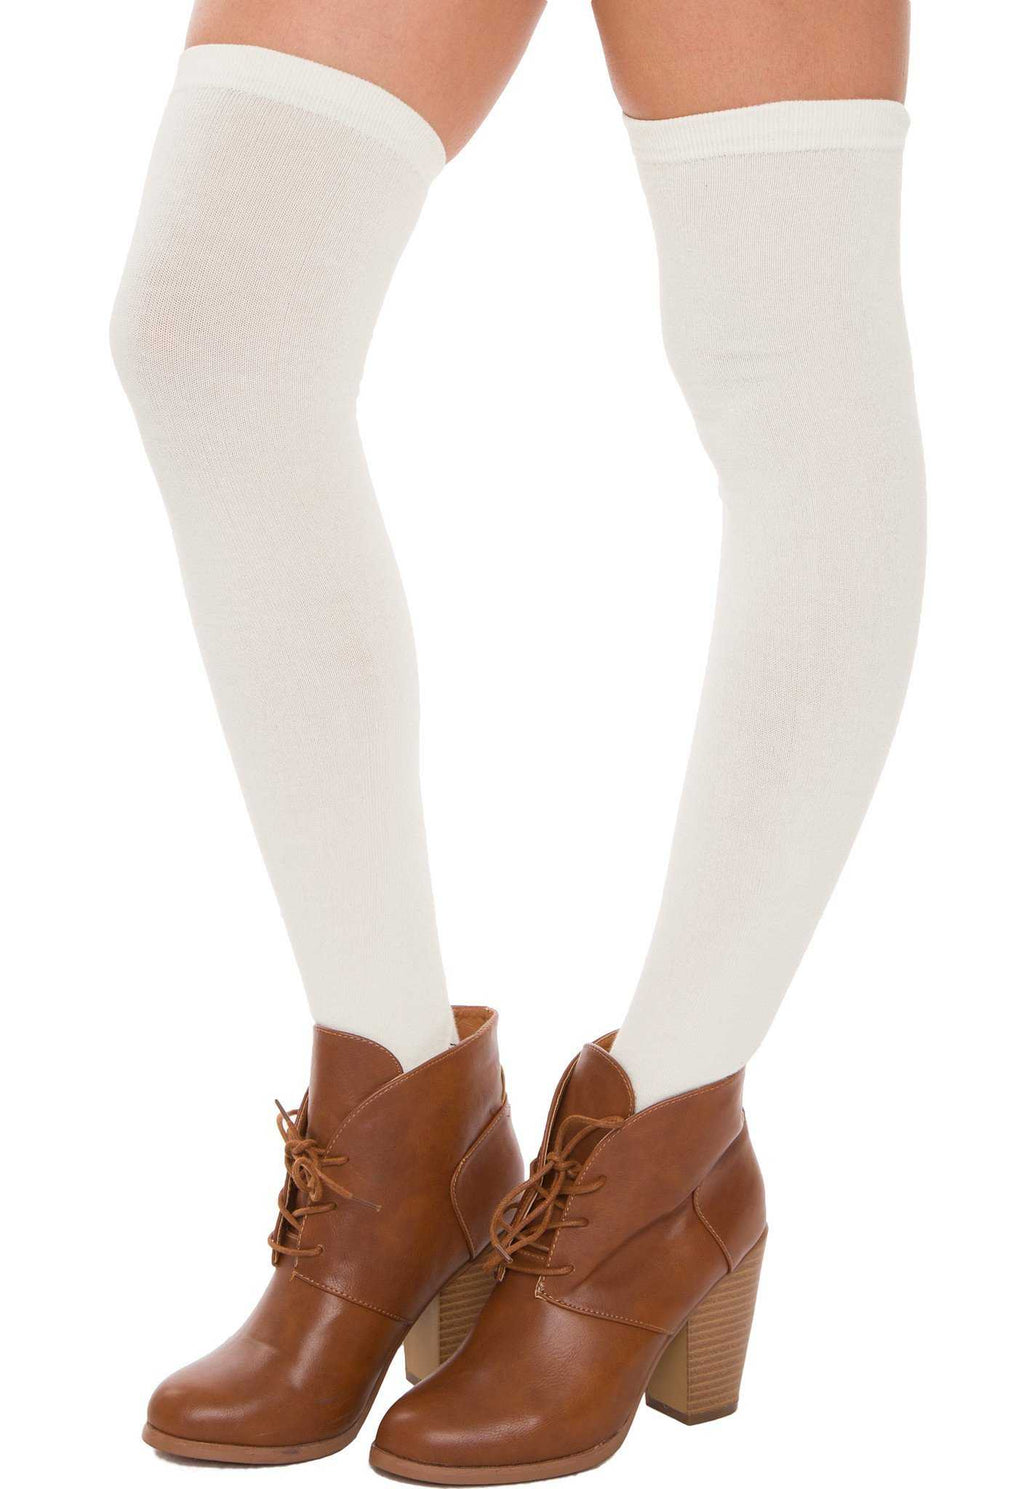 Accessories - Hope Over The Knee Socks In Ivory